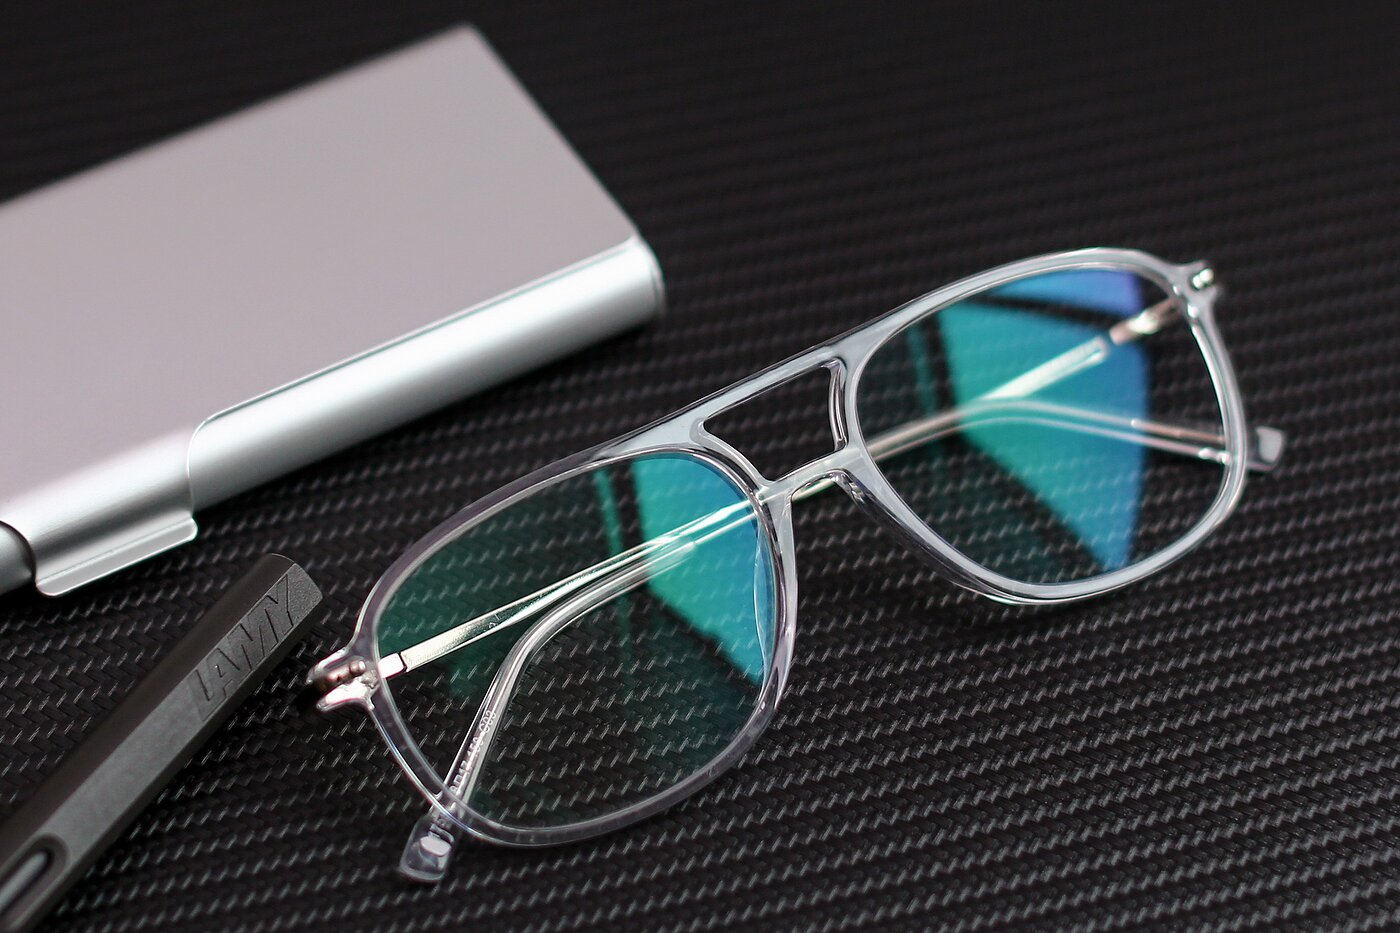 Clear Oversized Double Bridge Square Eyeglasses